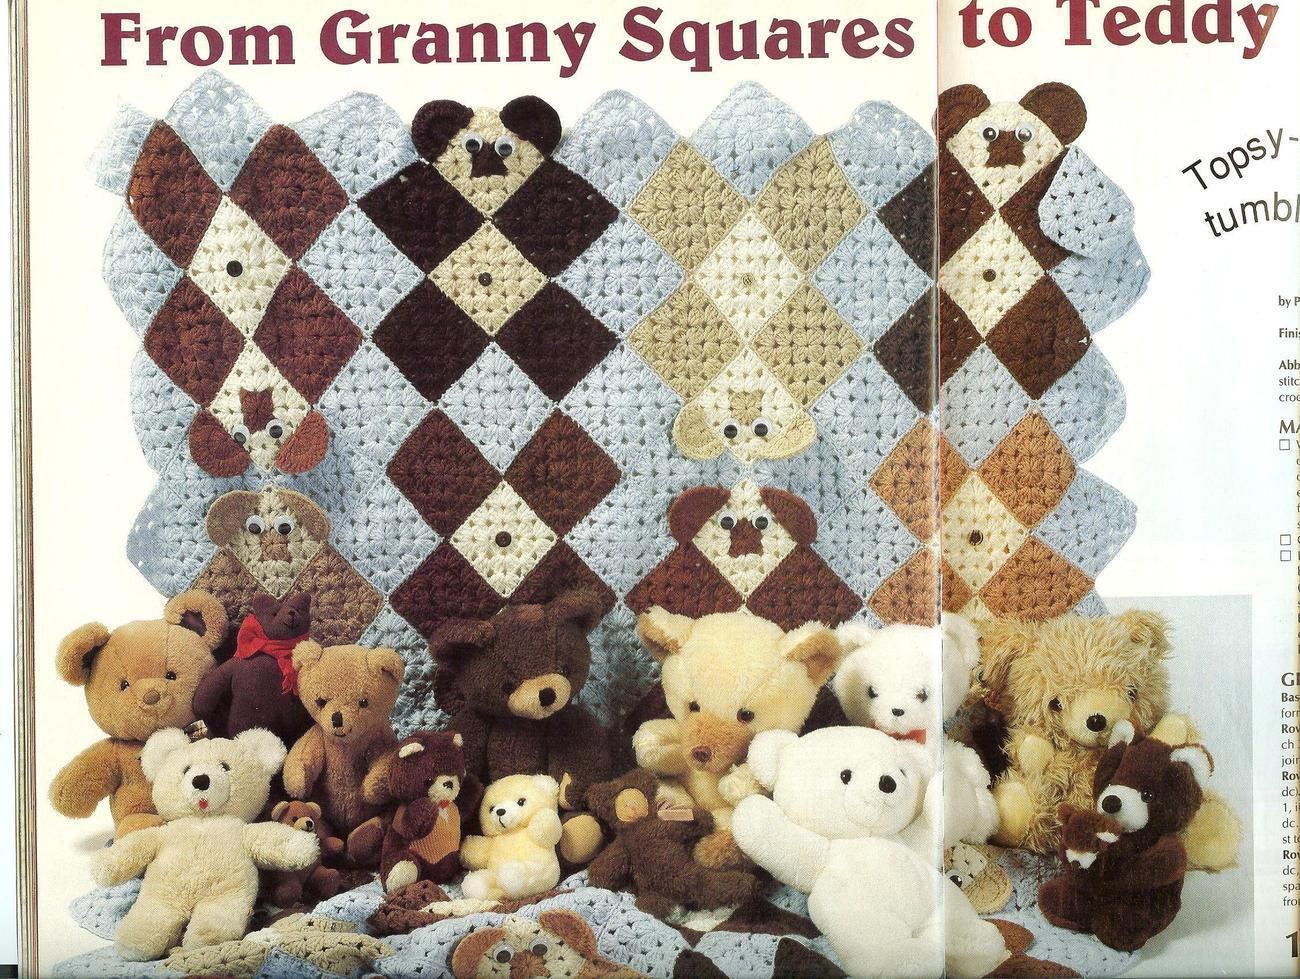 Free Teddy Bear Crochet Afghan Pattern : Darling~Granny Squares Teddy Bear Afghan Crochet Pattern ...